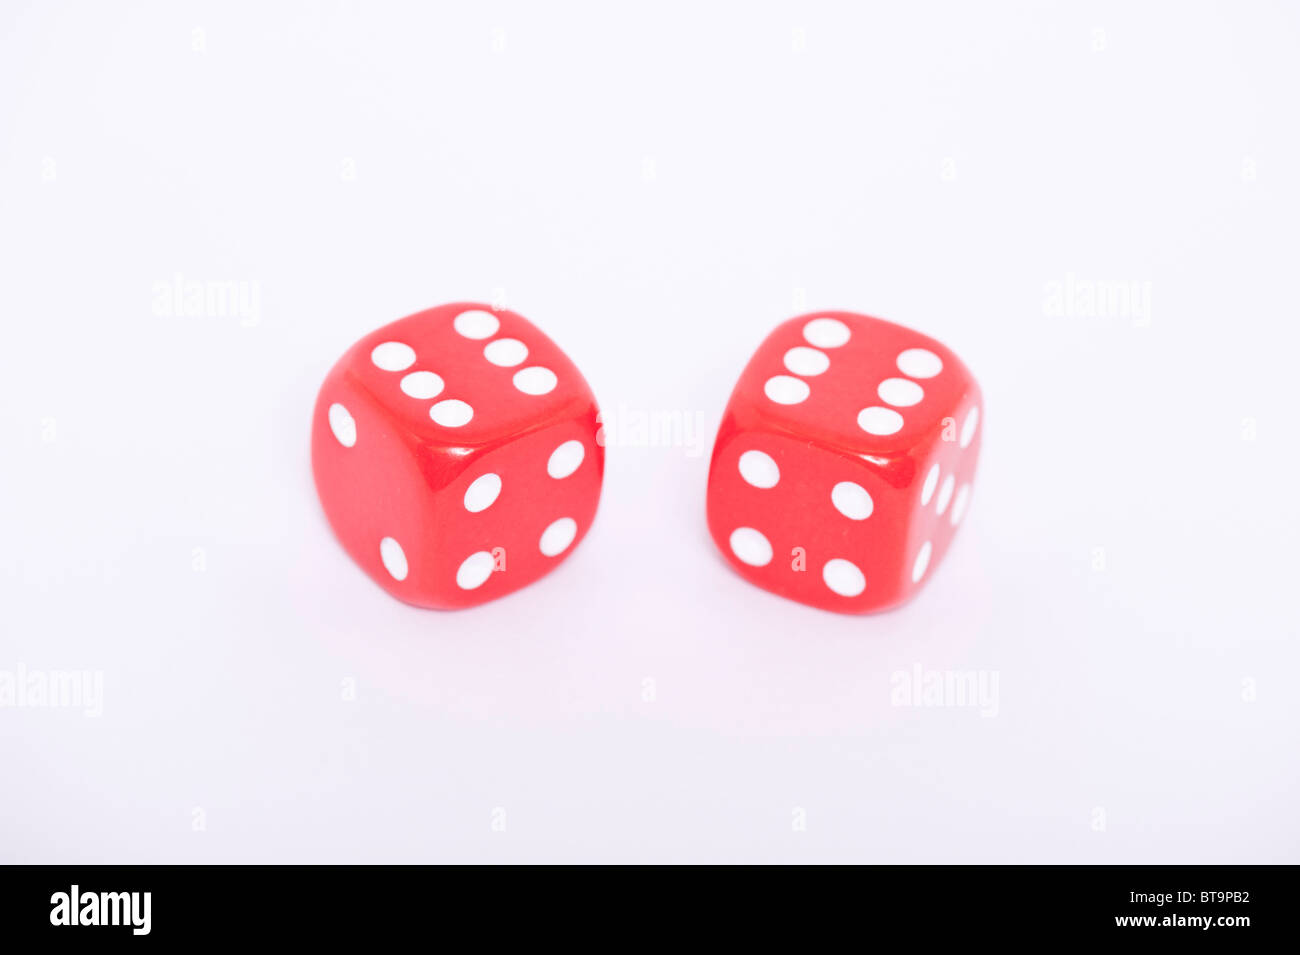 A pair of red dice both showing a six on a white background - Stock Image